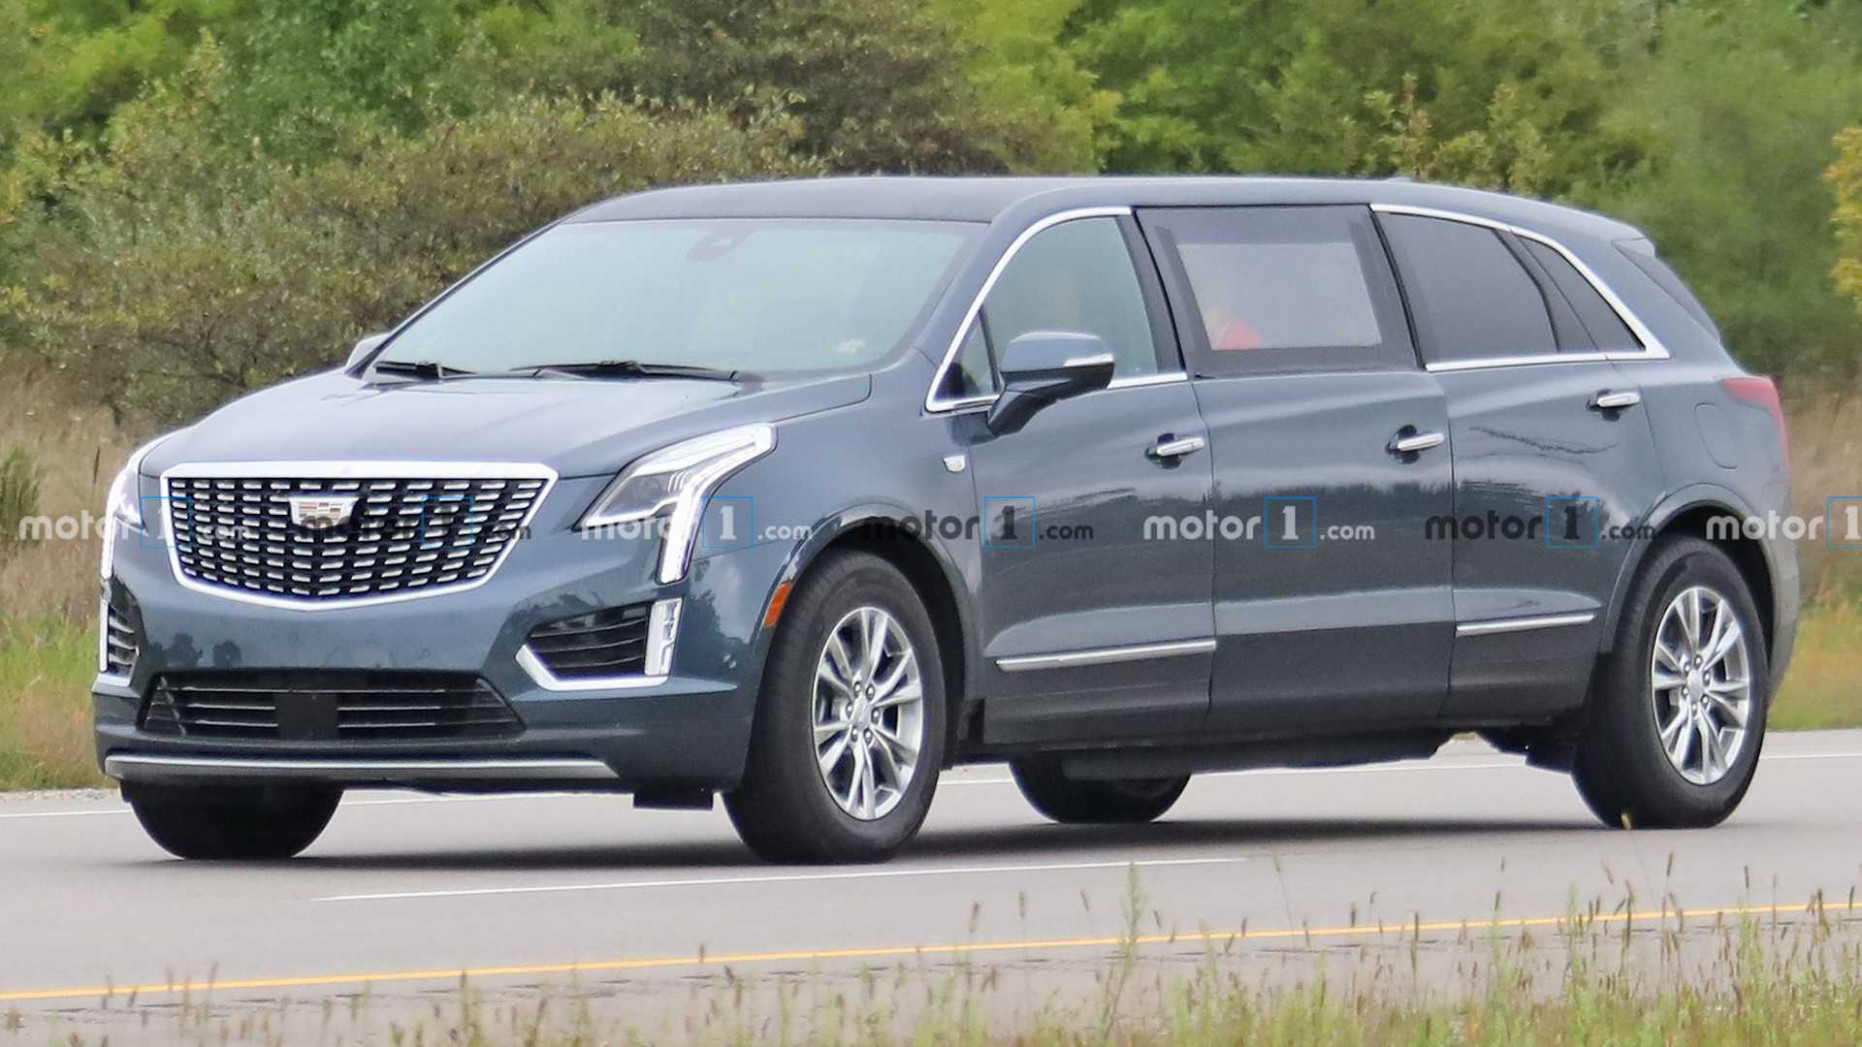 Price and Release date 2022 Spy Shots Cadillac Xt5